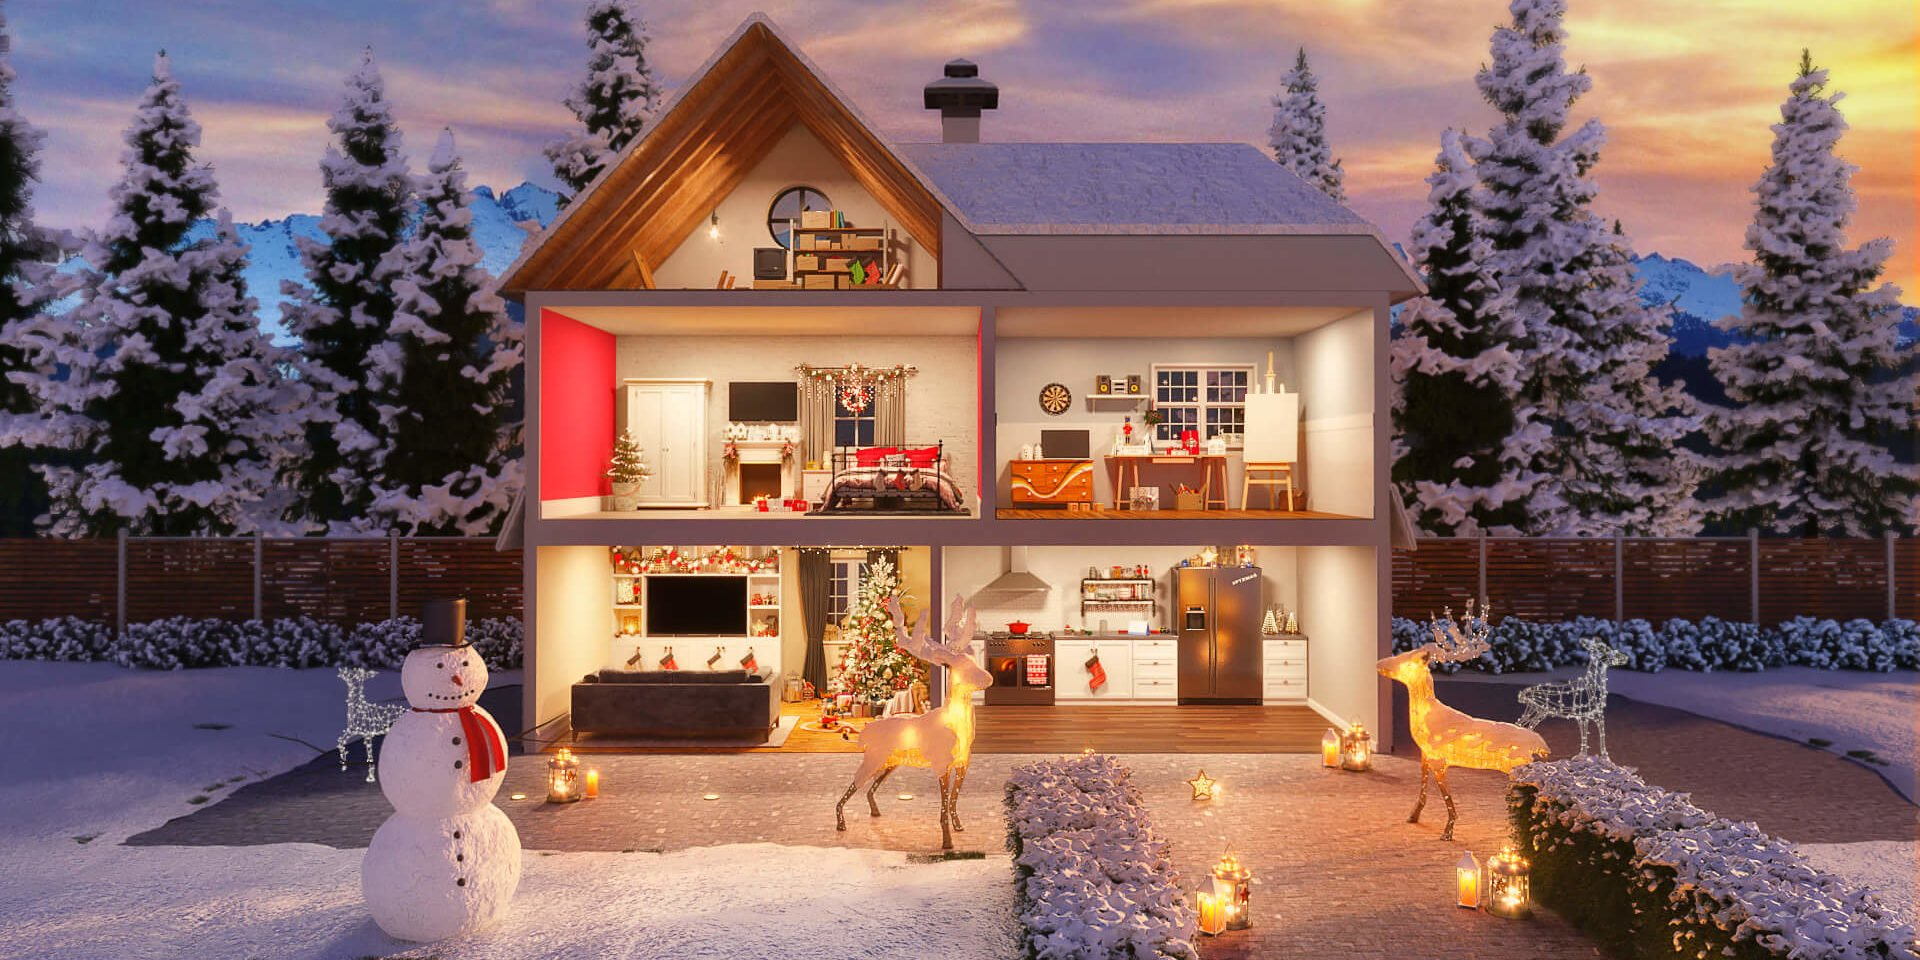 Pentatonix Christmas House Cutaway - Festive Interior CGI Project with Modern English